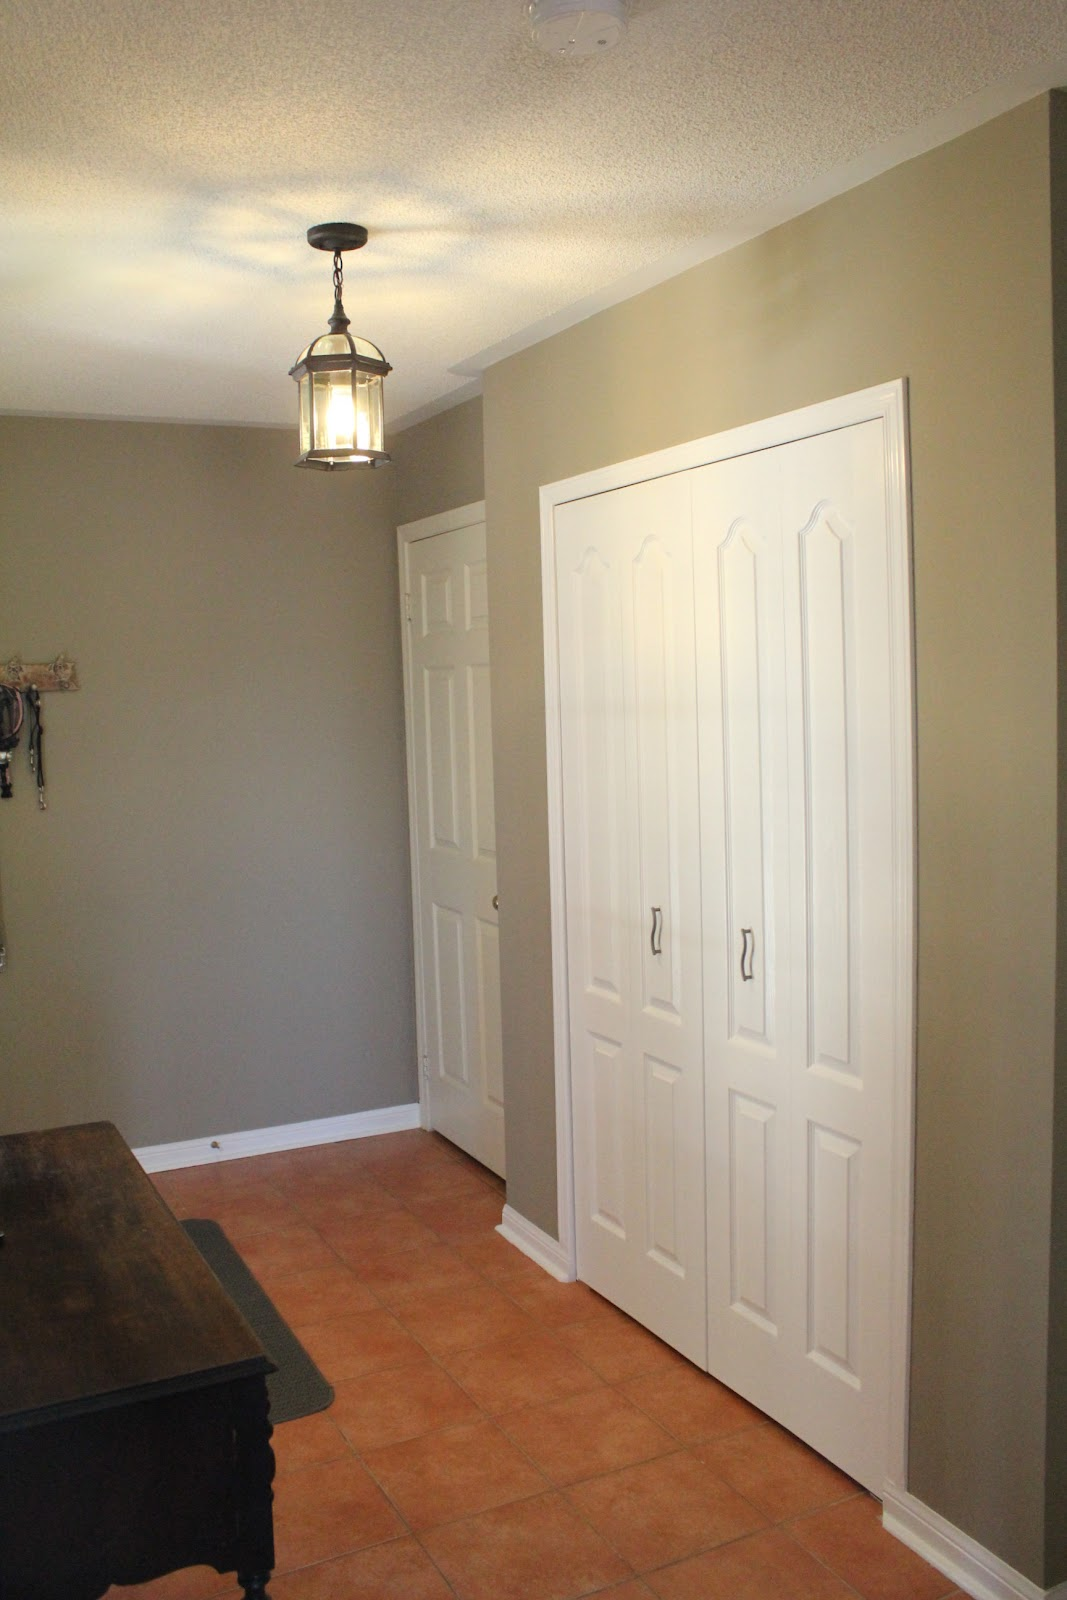 Foyer Closet Sliding Doors : Turtles and tails installing bi fold doors foyer reveal